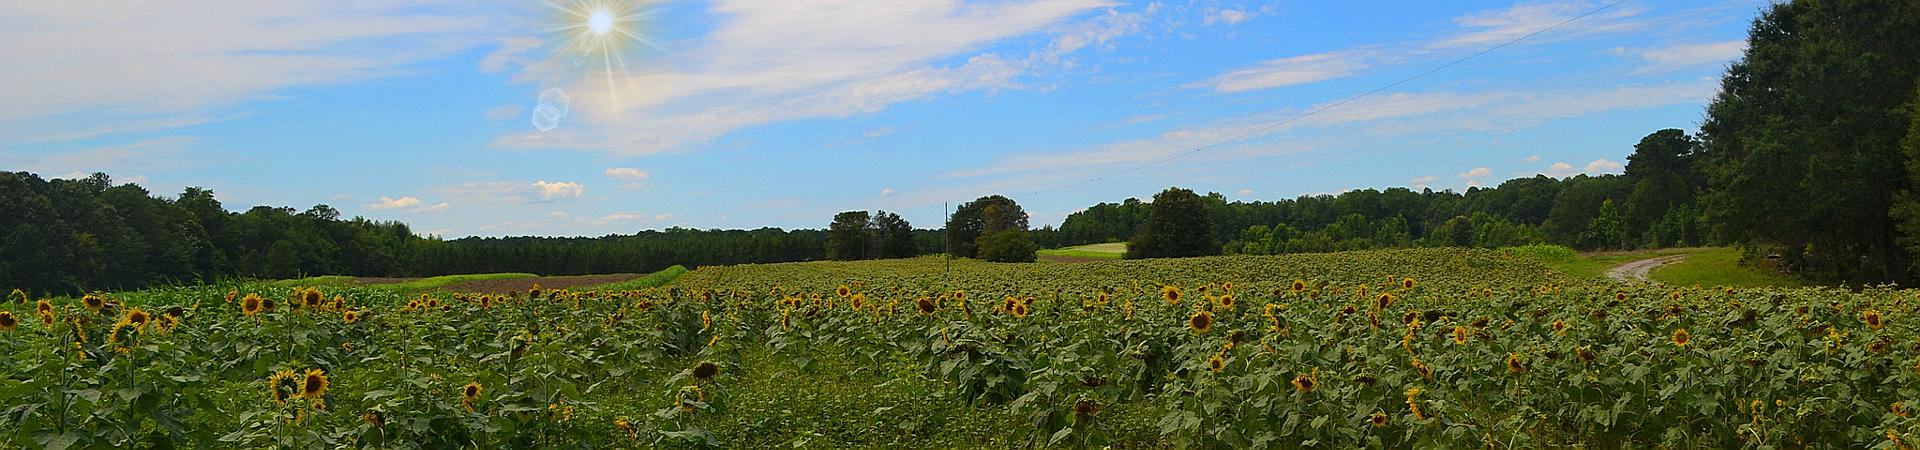 sunflowers in dove field at Joe Kruz WMA